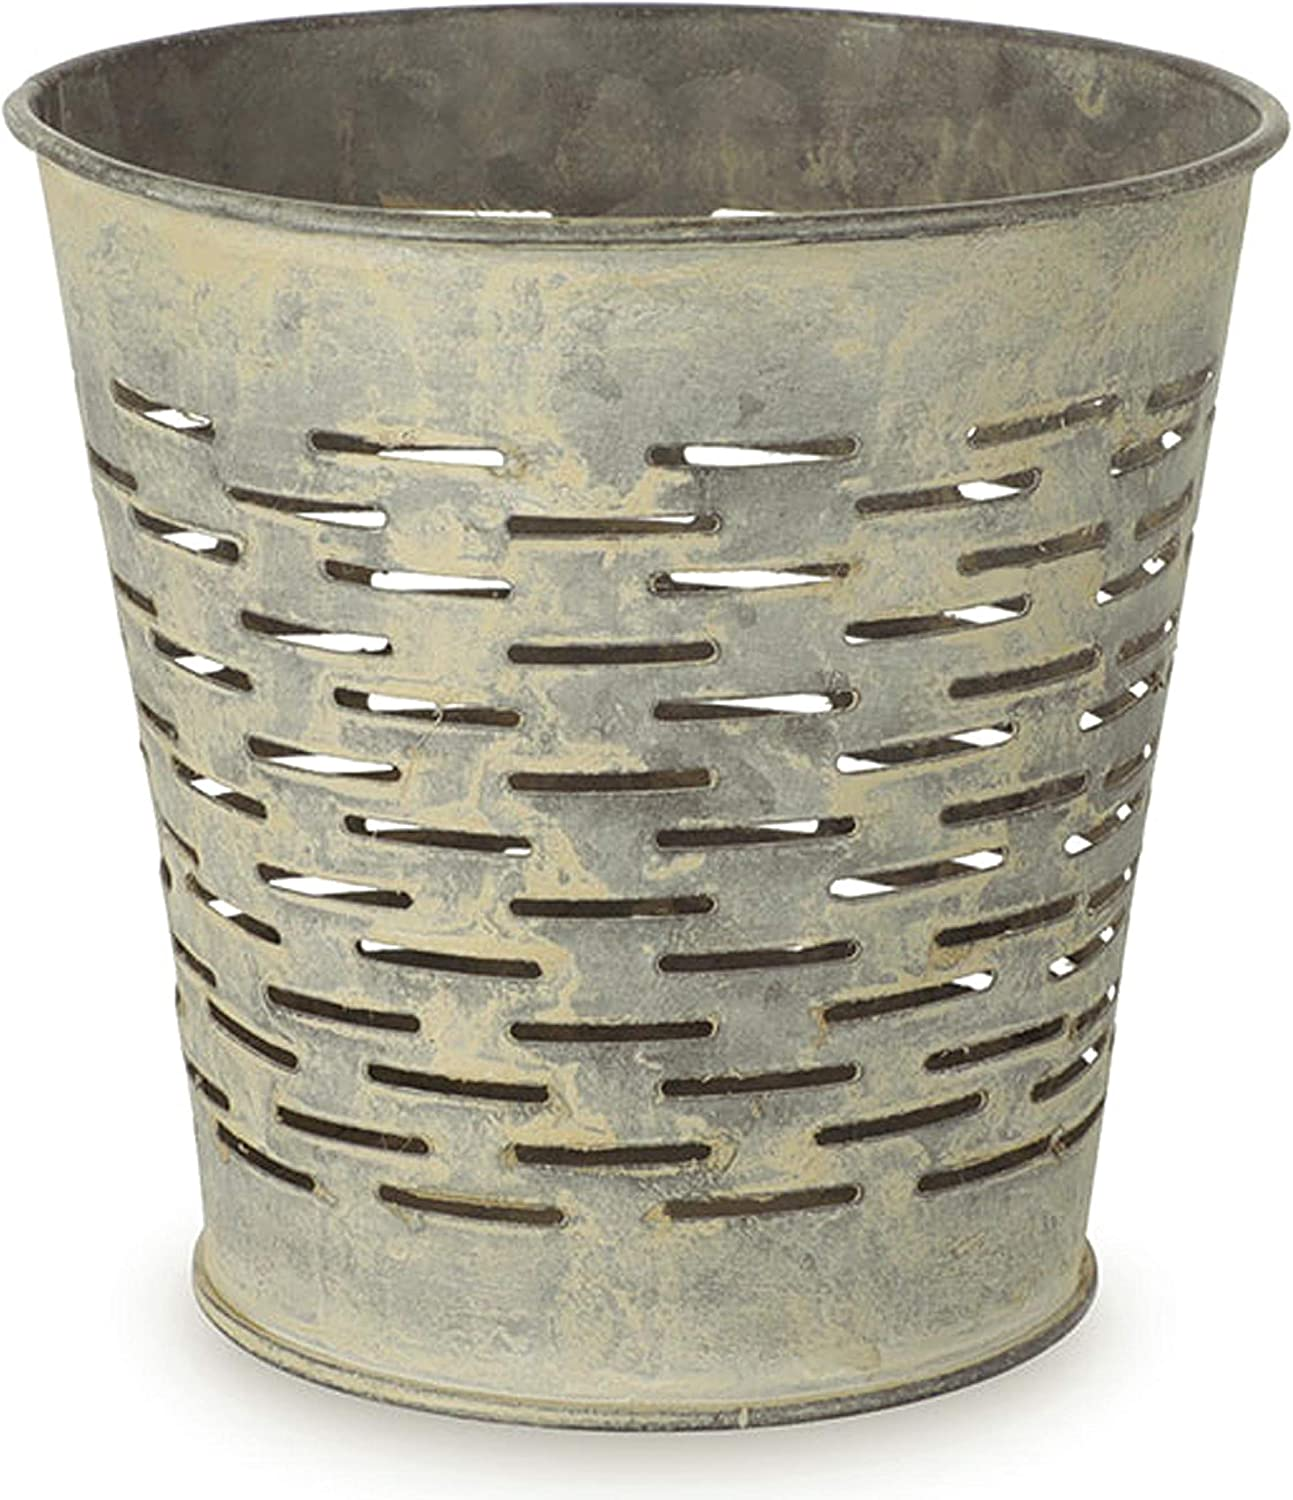 "Retro Olive Bucket Style Metal Planter (Small, 4"")"